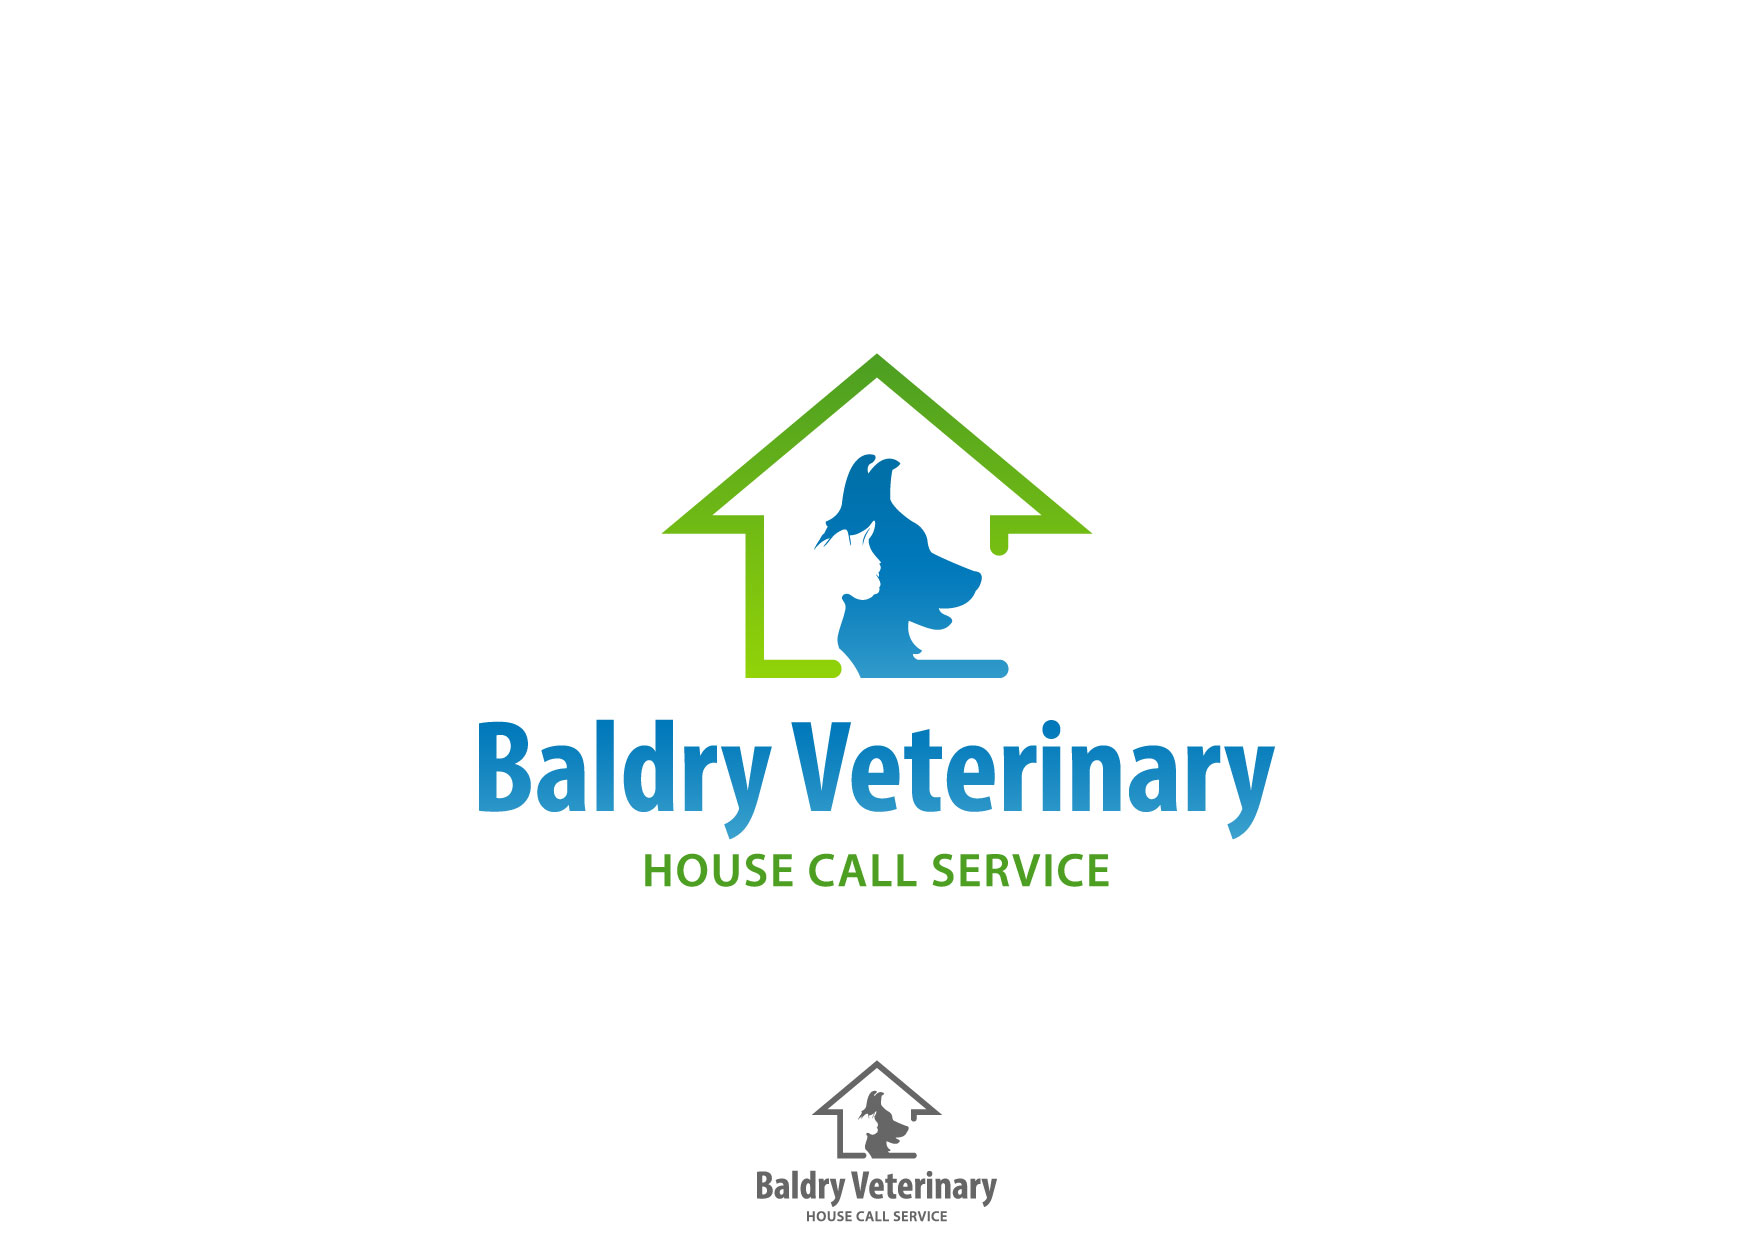 Logo Design by Nurgalih Destianto - Entry No. 73 in the Logo Design Contest Captivating Logo Design for Baldry Veterinary House Call Service.